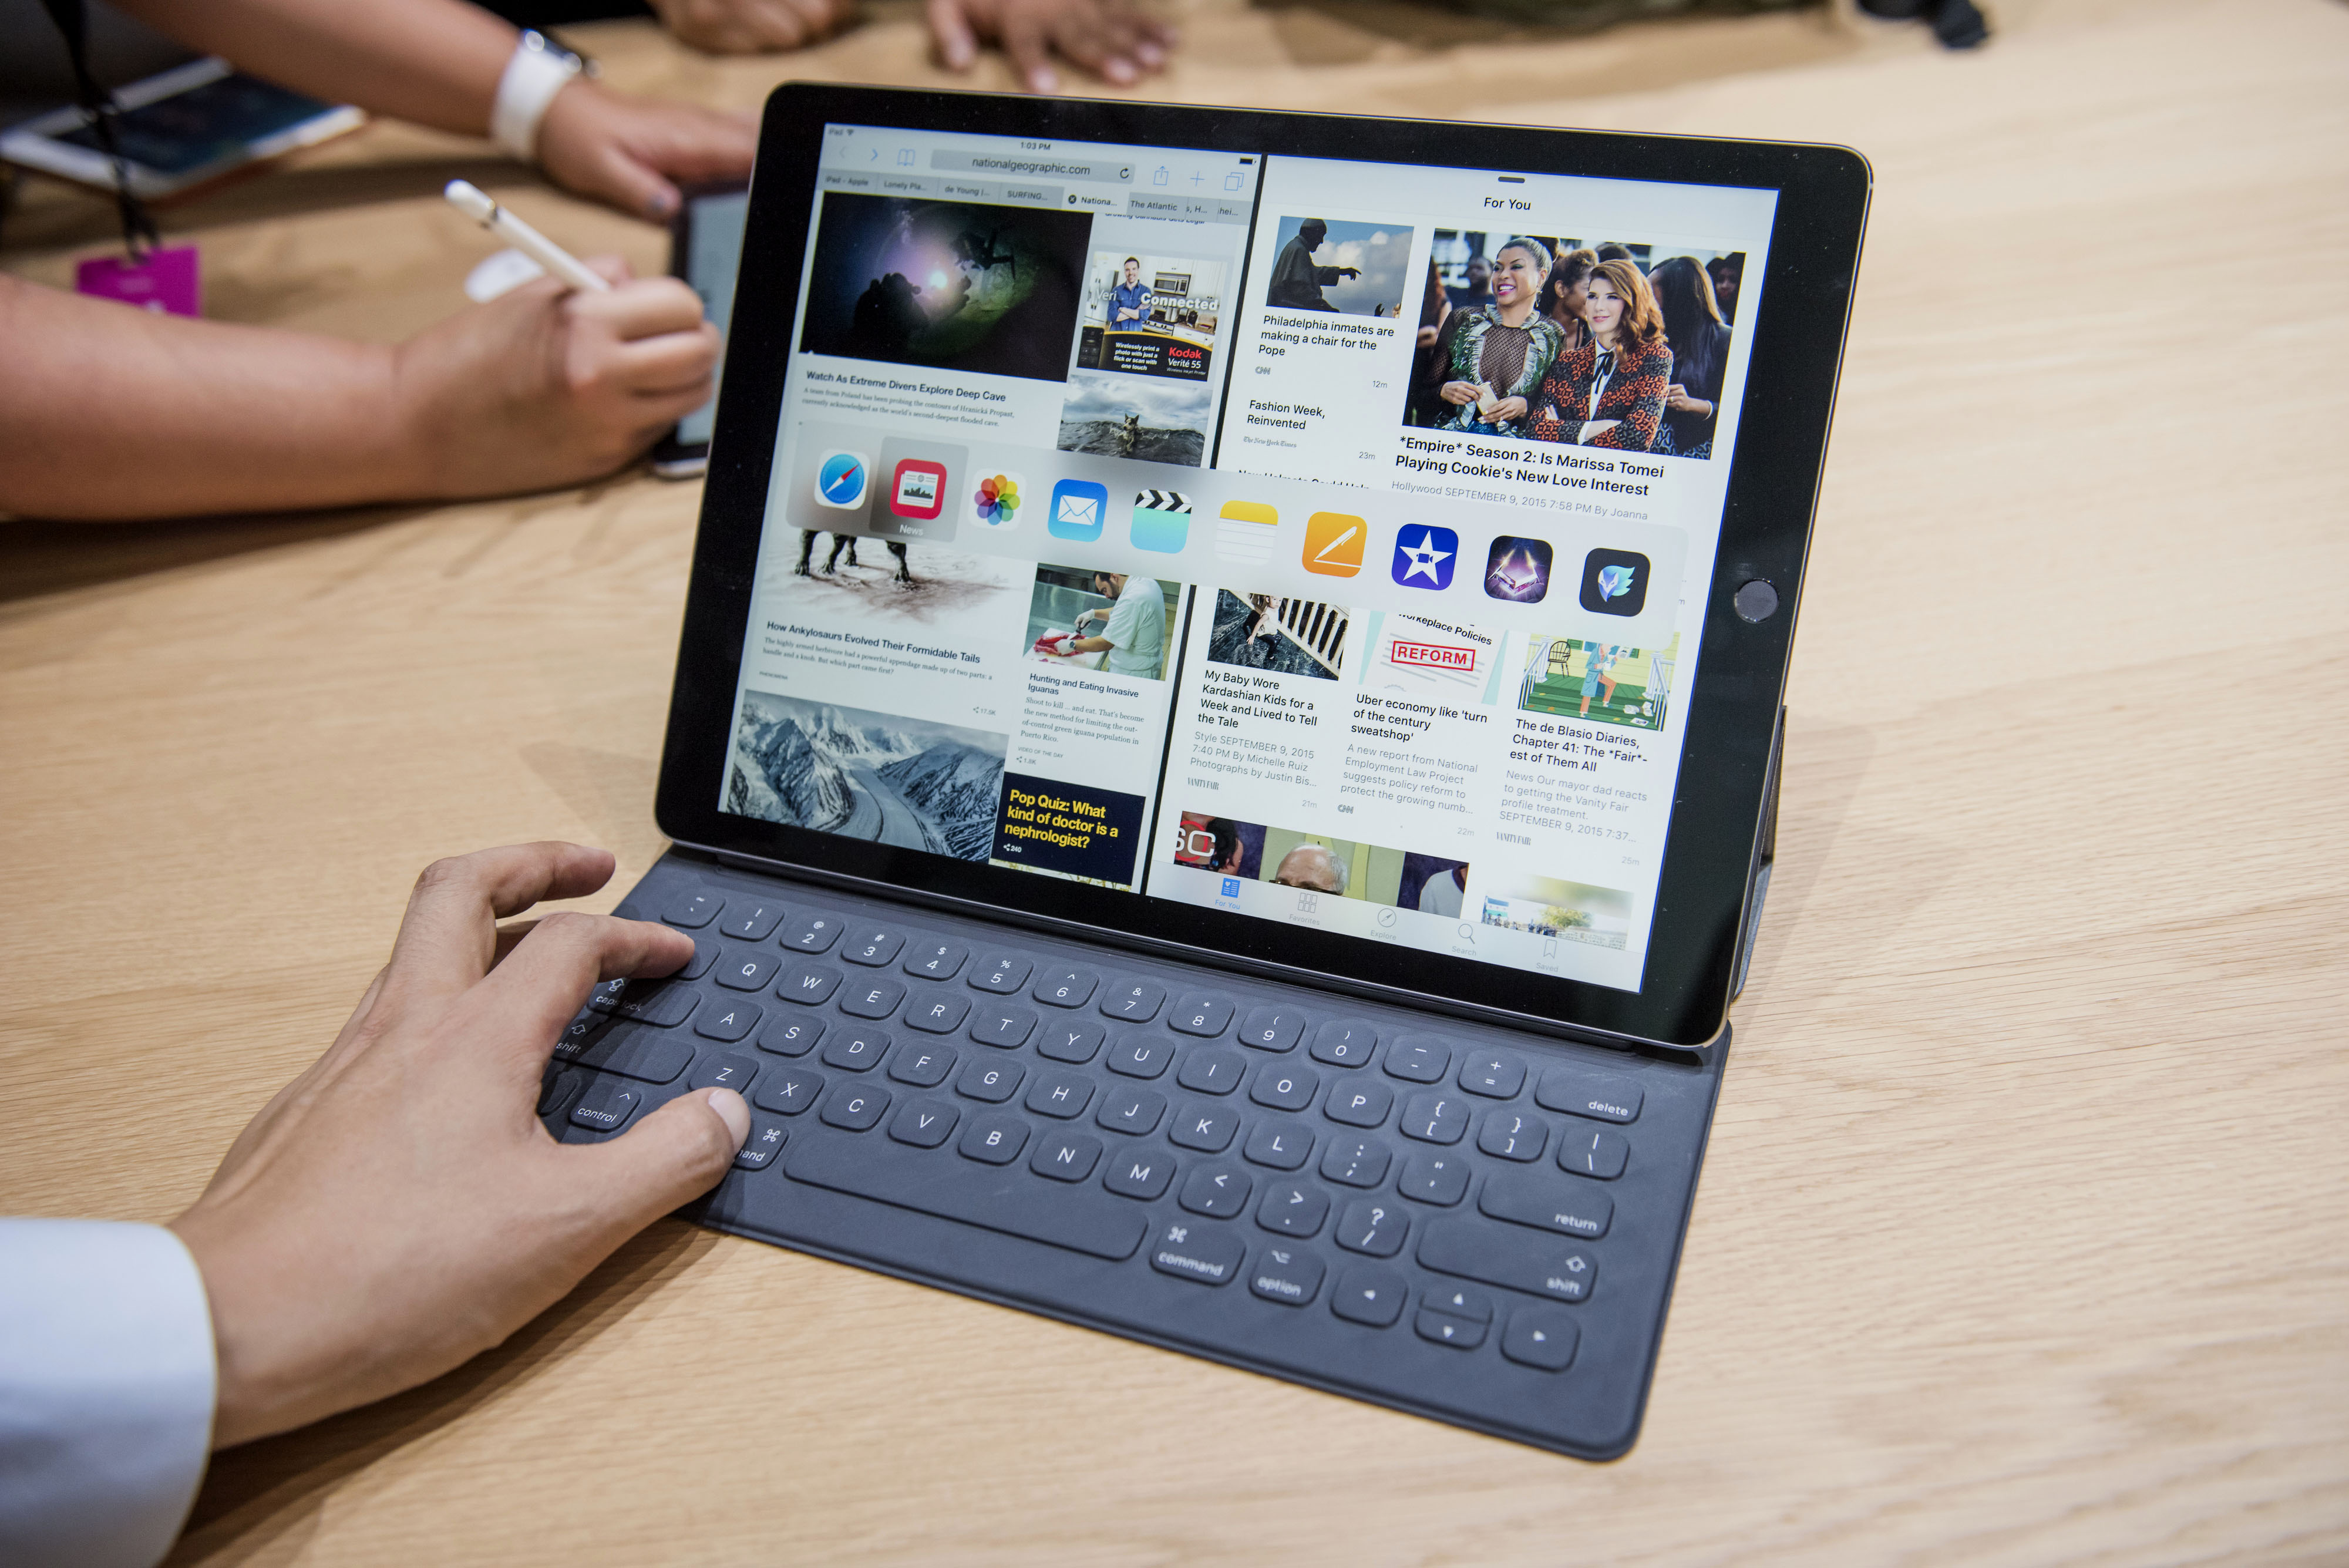 A new keyboard is displayed with the new Apple Inc. iPad Pro during an Apple product announcement in San Francisco, California, U.S., on Wednesday, Sept. 9, 2015. Apple Inc. introduced a larger iPad with a 12.9-inch screen, designed to attract business users and jump-start demand for its tablets. Photographer: David Paul Morris/Bloomberg